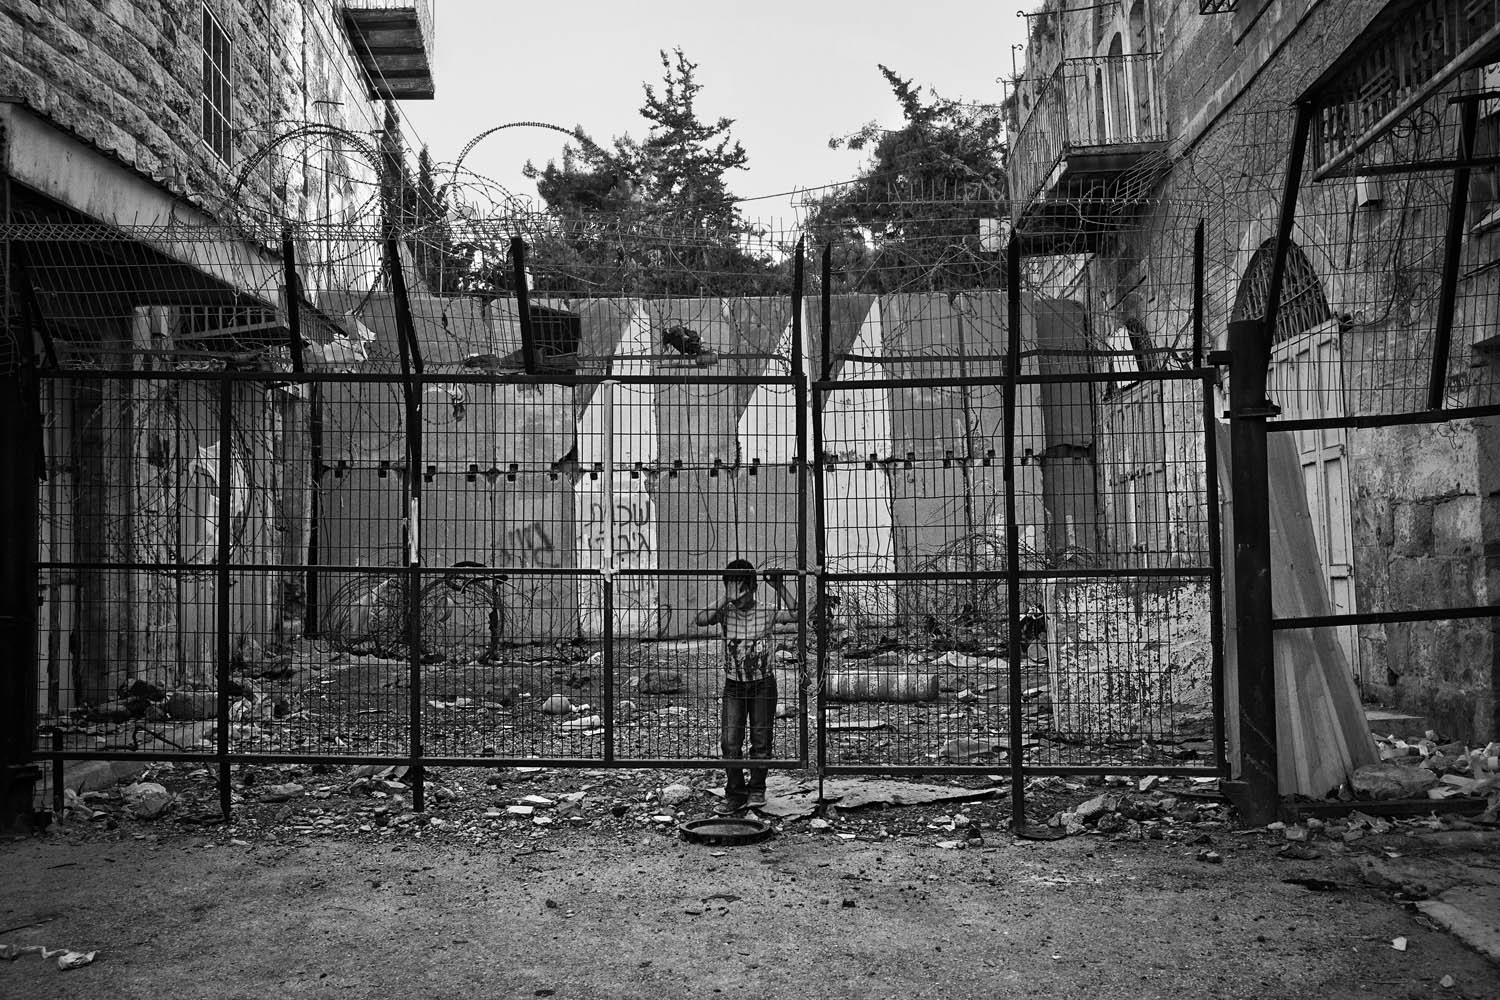 A young boy waits for his friend to play in a closed street of the H2 zone in Hebron, West Bank, April 28, 2013.